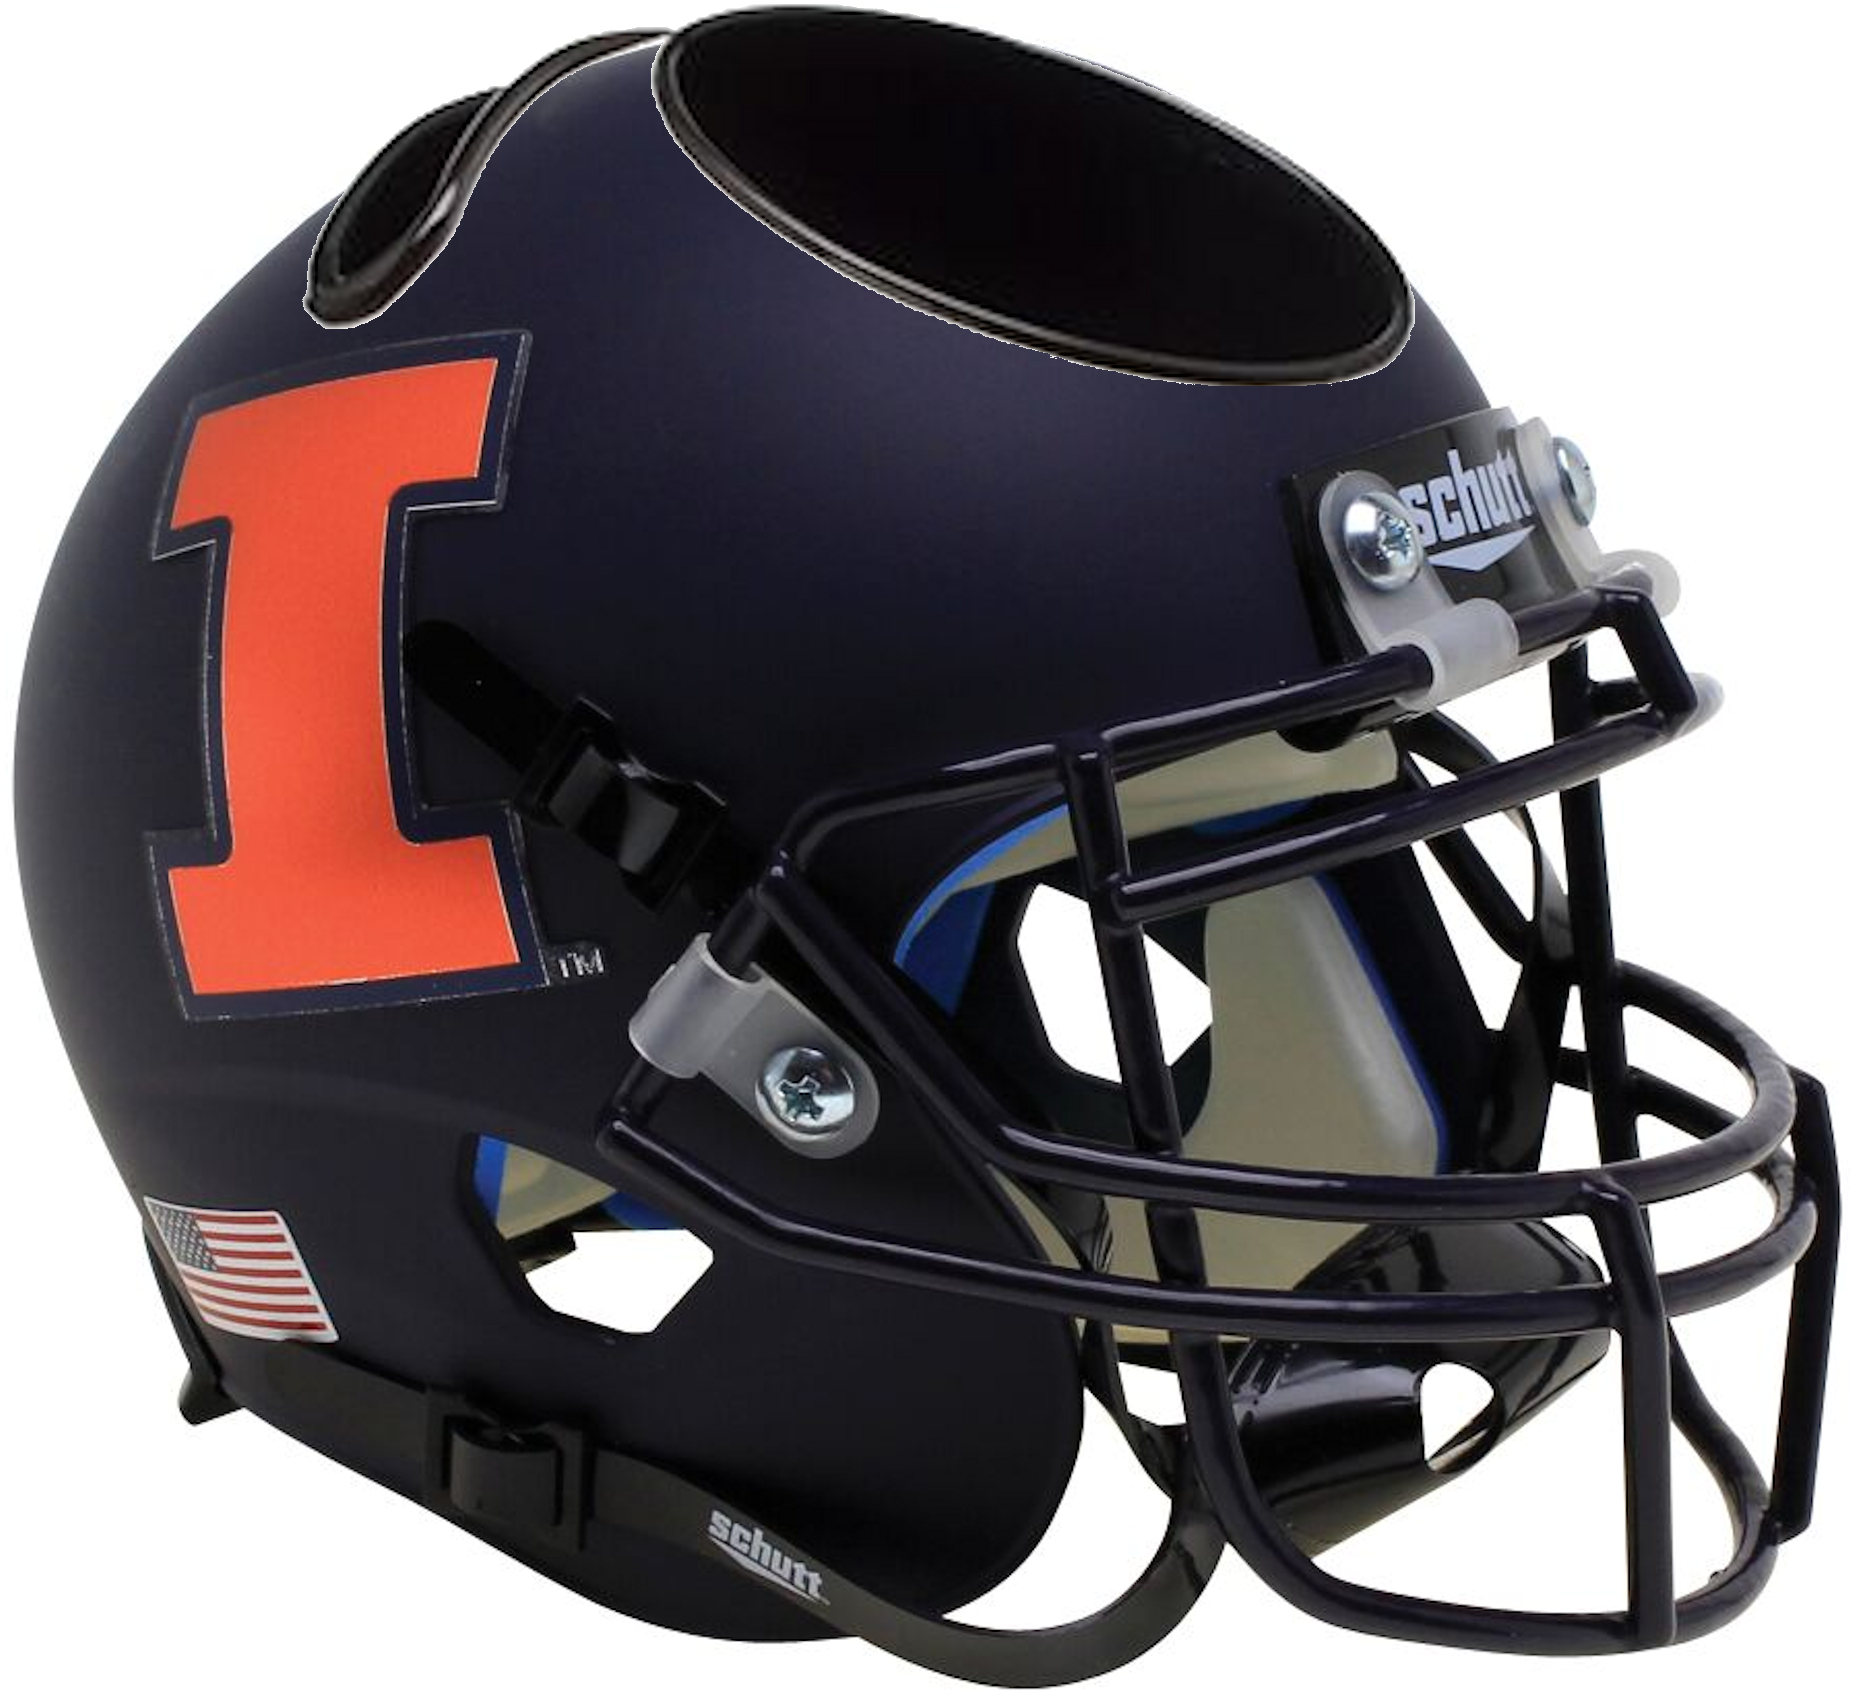 Illinois Fighting Illini Miniature Football Helmet Desk Caddy <B>Matte Black Orange I</B>